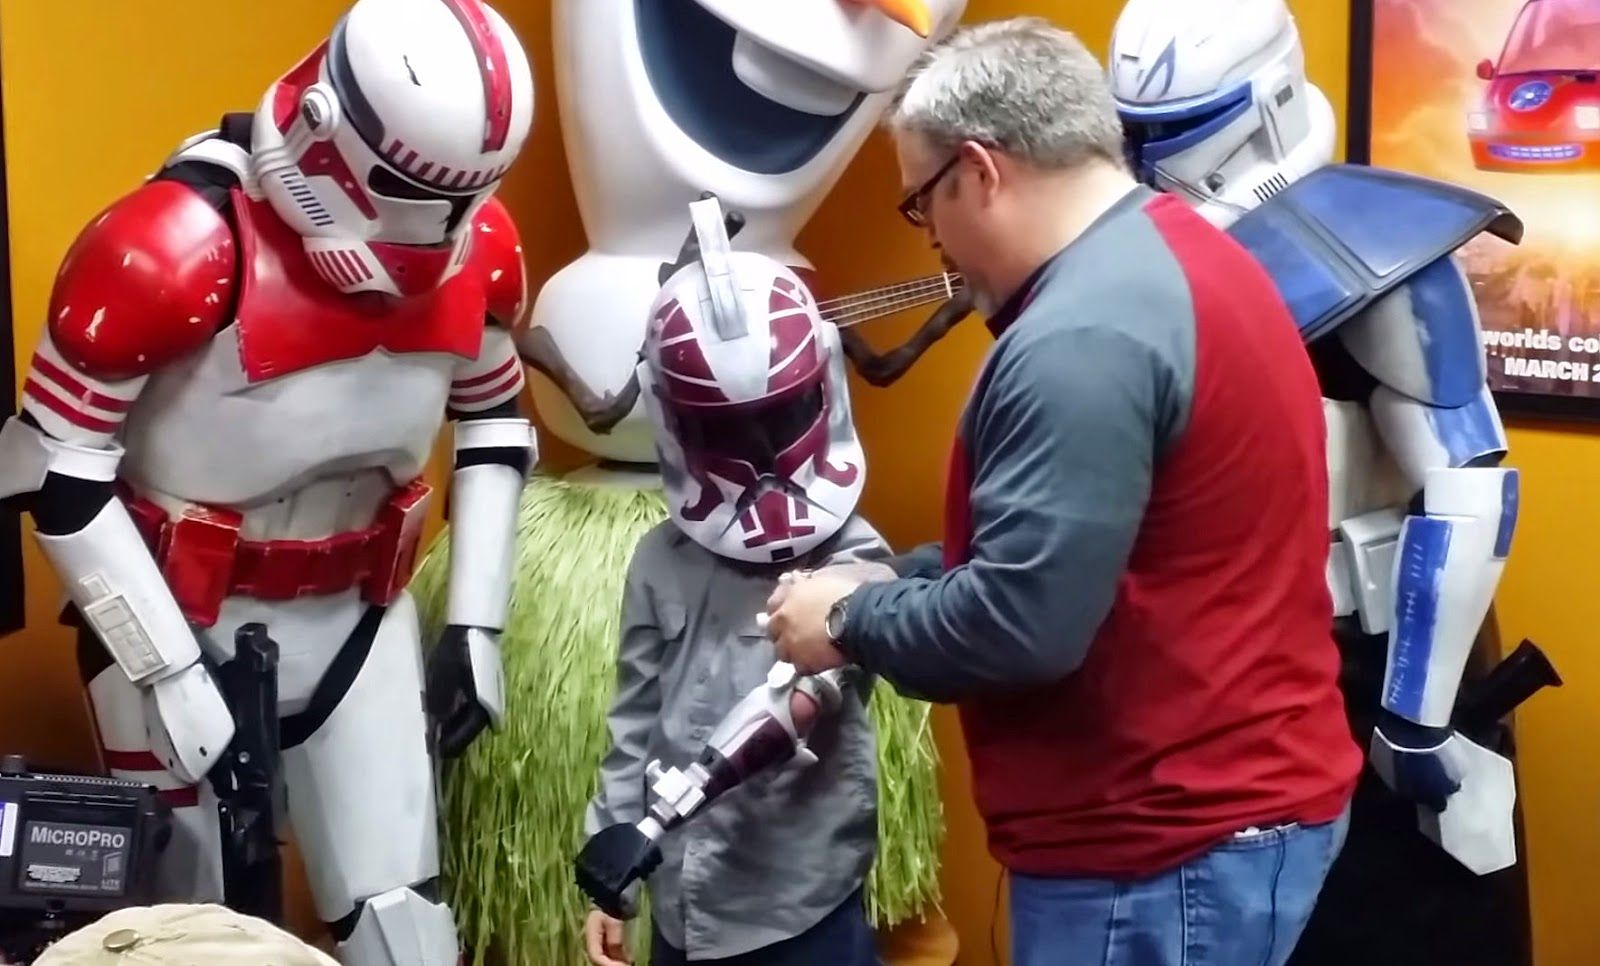 Feel All the emotions as This 7-Year-Old Boy Is Given a Prosthetic Stormtrooper Arm